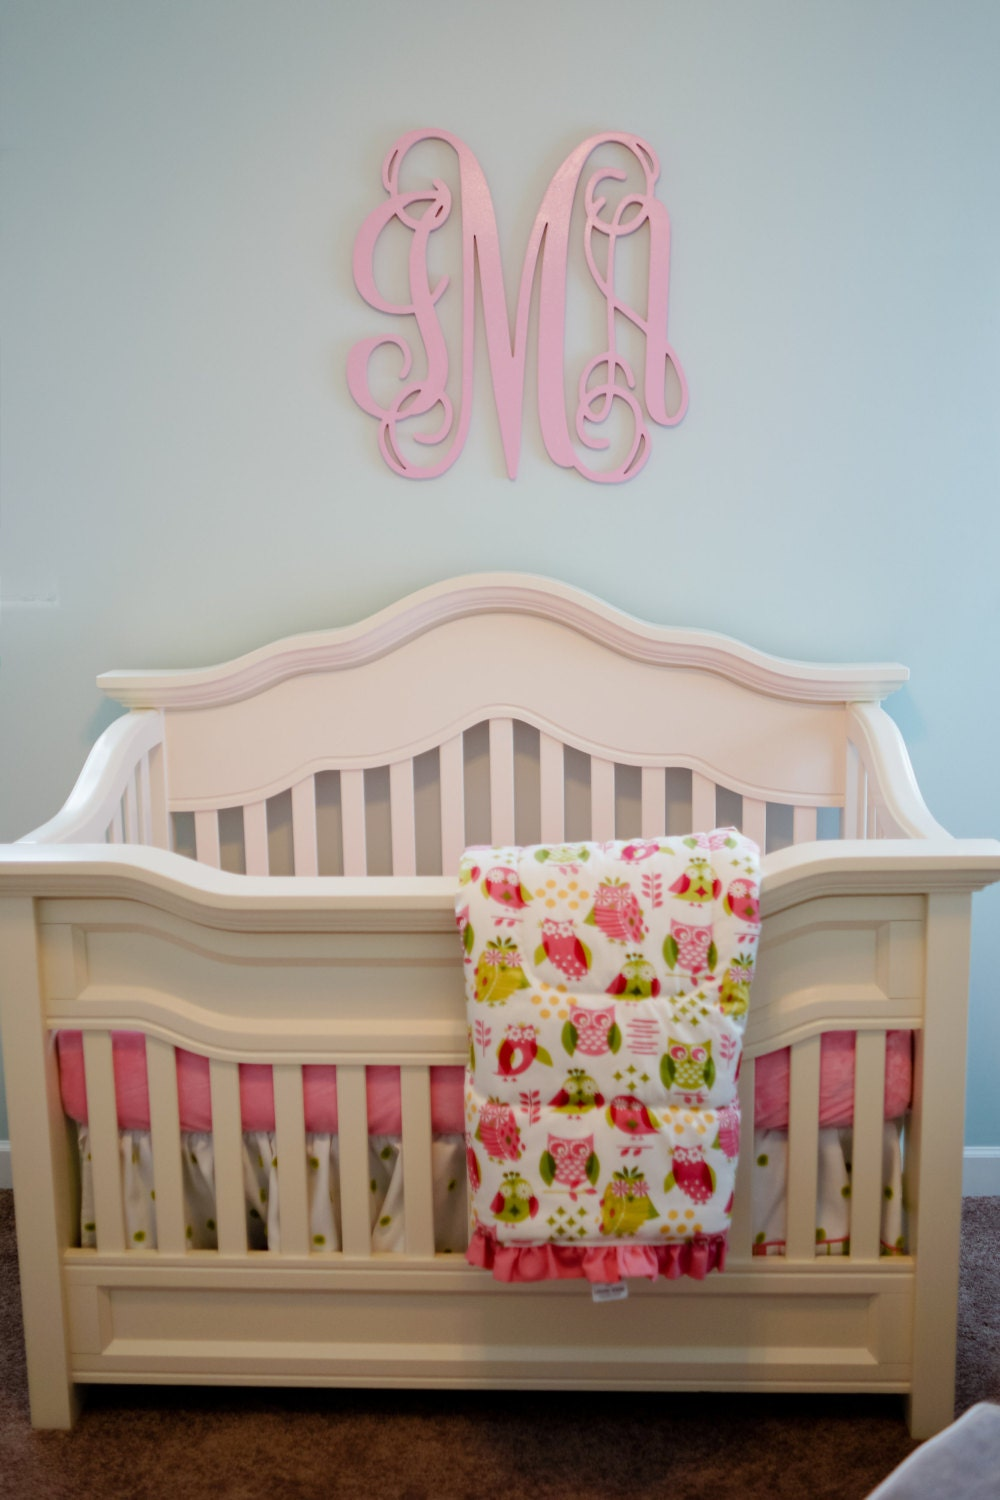 26 inch painted wooden monogram wall letters nursery for Where to buy wooden letters for nursery